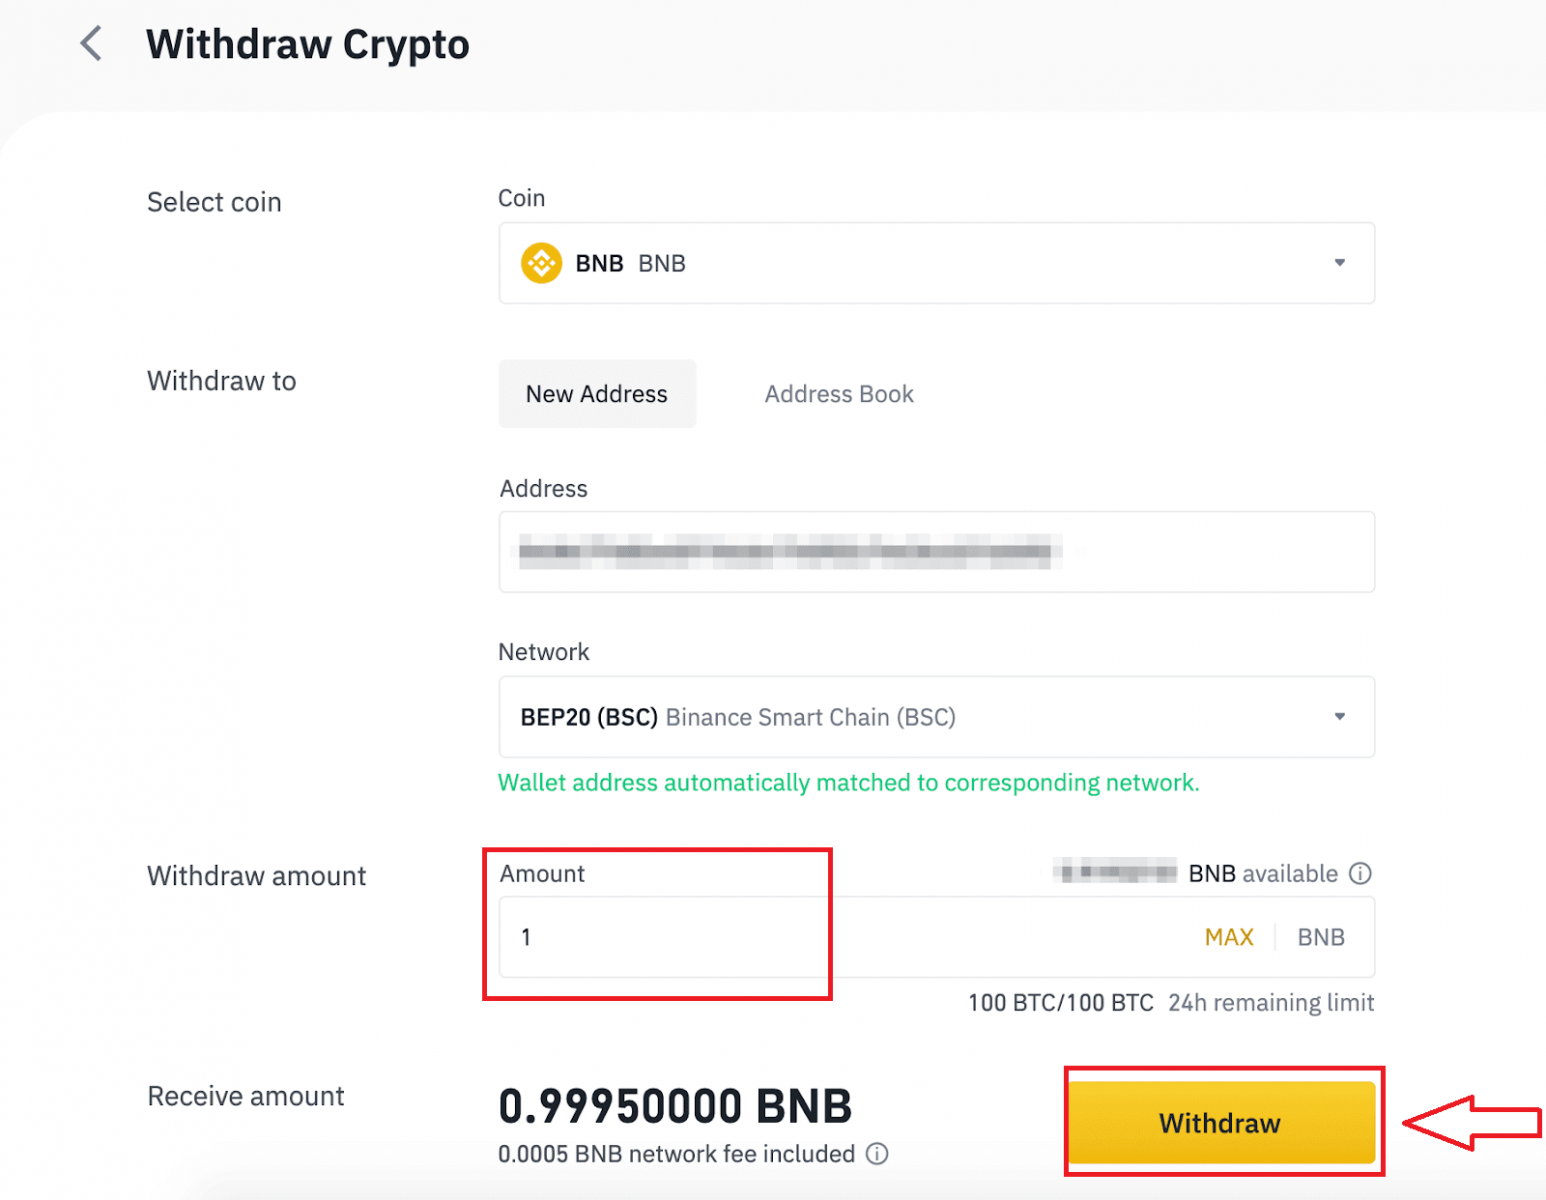 How to Trade and Withdraw from Binance